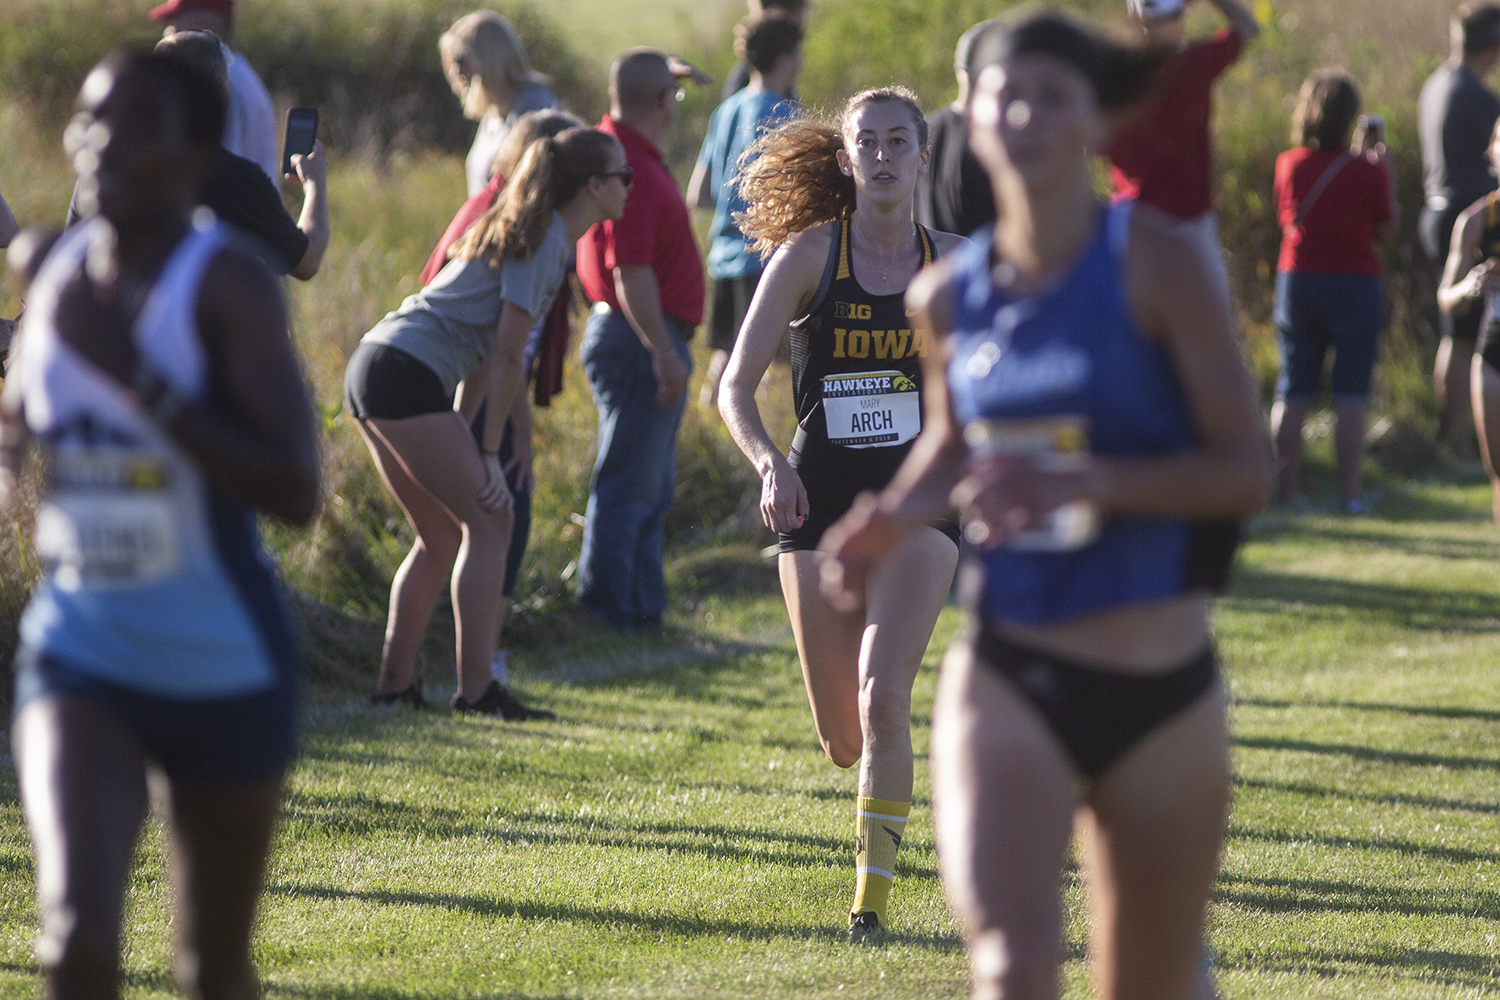 Iowa%E2%80%99s+Mary+Arch+makes+her+way+down+the+finishing+stretch+during+the+Hawkeye+Invitational+at+Ashton+Cross+Country+Course+on+Friday%2C+September+6%2C+2019.+Arch+finished+18th+with+a+time+of+14%3A50.2.+The+Hawkeyes+defeated+six+other+teams+to+finish+first+overall+for+both+men%E2%80%99s+and+women%E2%80%99s+races.